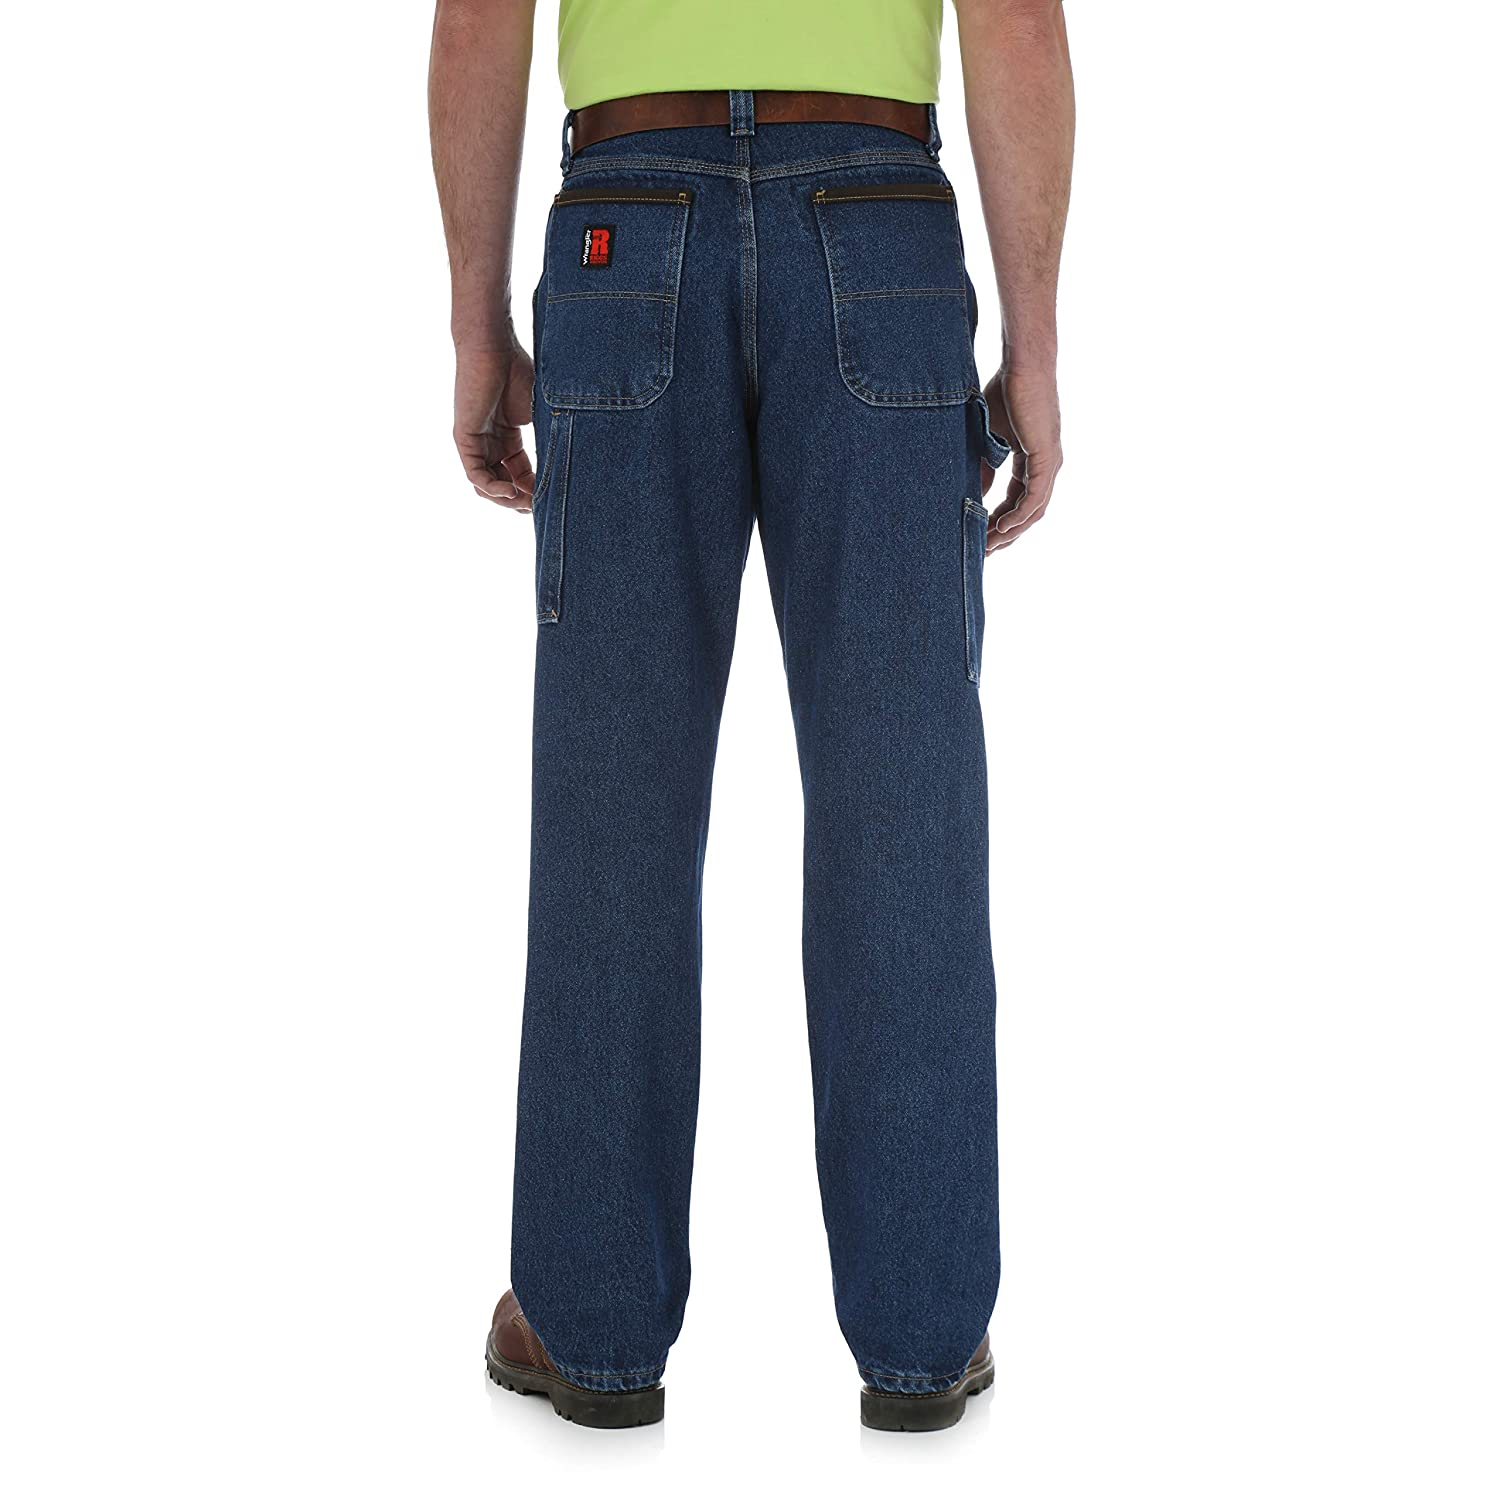 475e5aea5eb5 Wrangler RIGGS WORKWEAR Men s Utility Jean at Amazon Men s Clothing store   Cargo Jeans